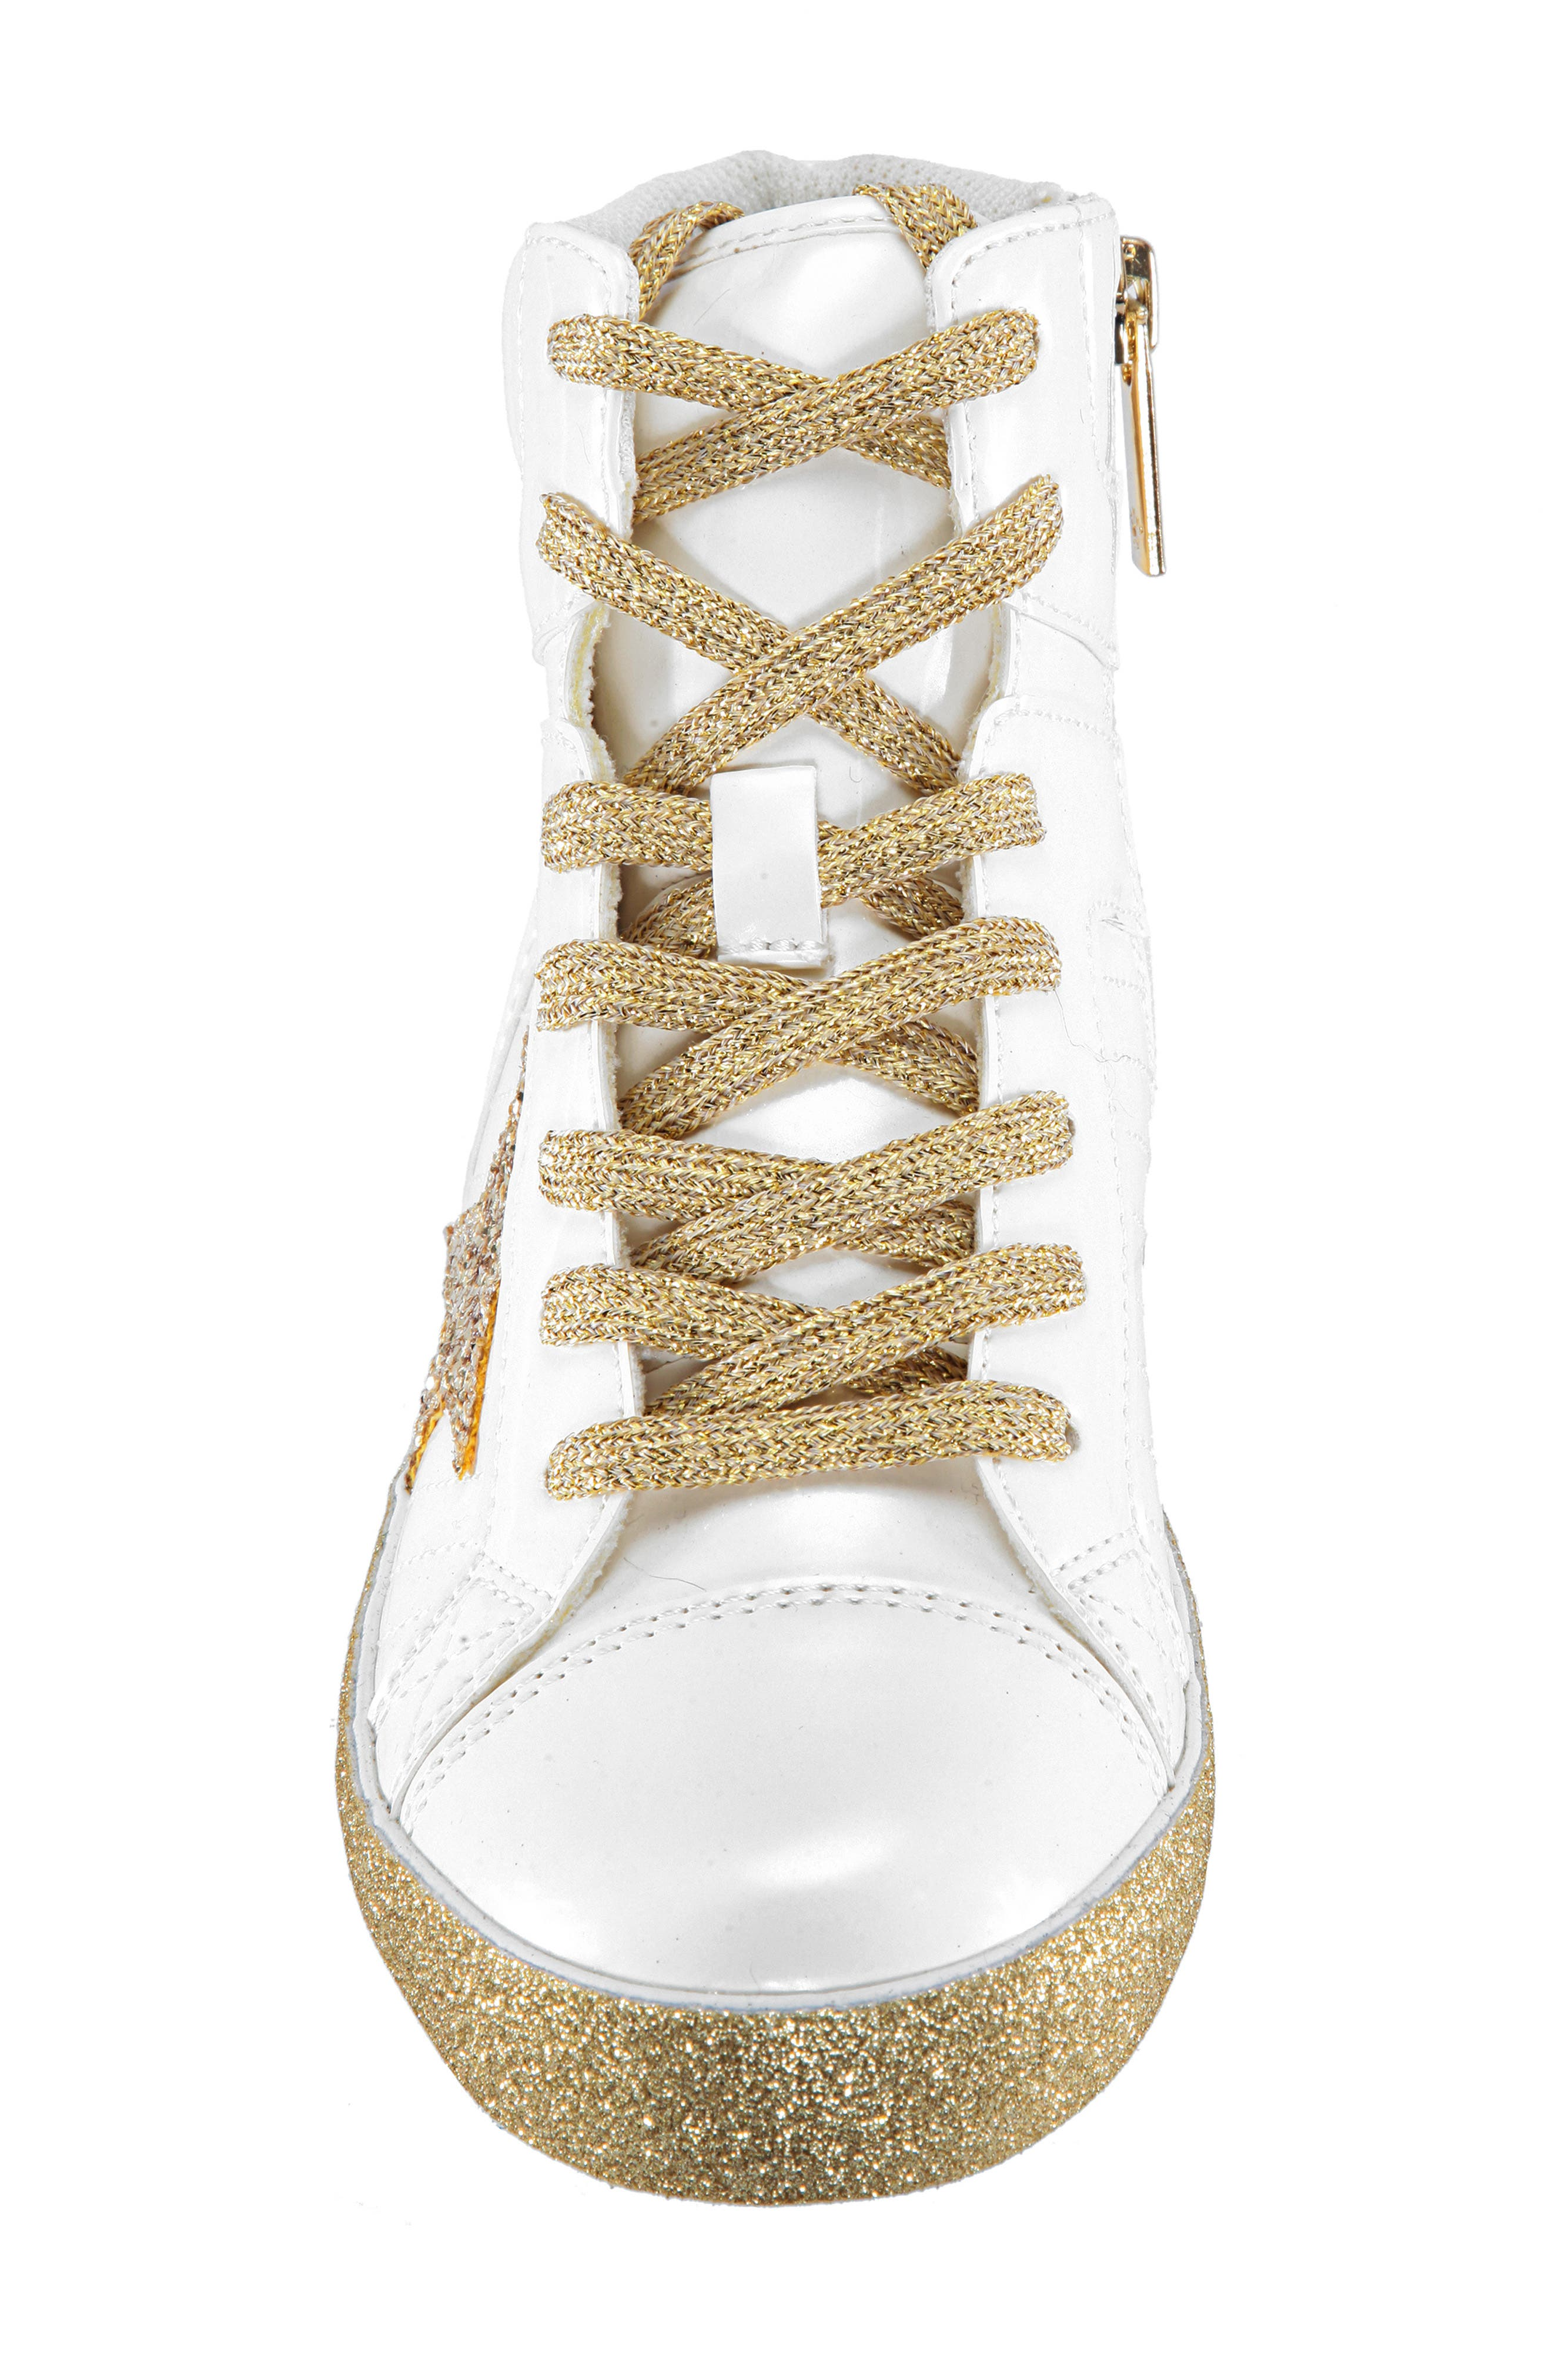 Jesy Glitter High Top Sneaker,                             Alternate thumbnail 6, color,                             White Pearlized Patent